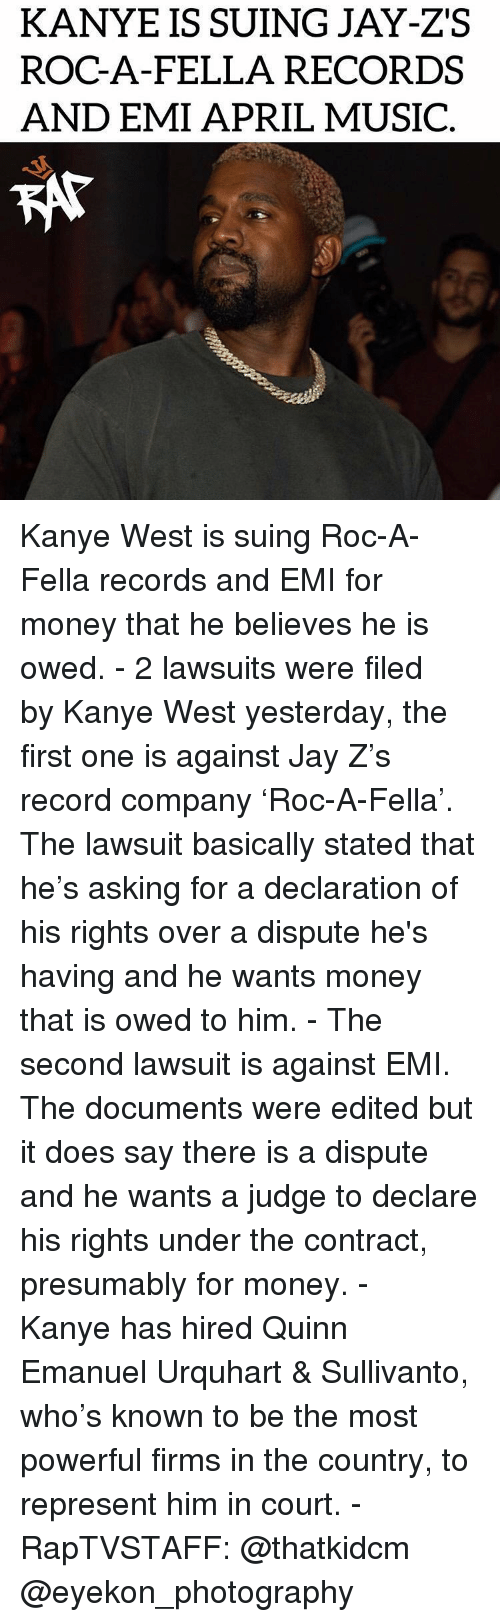 Lawsuit: KANYE IS SUING JAY-ZS  ROC-A-FELLA RECORDS  AND EMI APRIL MUSIC  KAT Kanye West is suing Roc-A-Fella records and EMI for money that he believes he is owed. - 2 lawsuits were filed by Kanye West yesterday, the first one is against Jay Z's record company 'Roc-A-Fella'. The lawsuit basically stated that he's asking for a declaration of his rights over a dispute he's having and he wants money that is owed to him. - The second lawsuit is against EMI. The documents were edited but it does say there is a dispute and he wants a judge to declare his rights under the contract, presumably for money. - Kanye has hired Quinn Emanuel Urquhart & Sullivanto, who's known to be the most powerful firms in the country, to represent him in court. - RapTVSTAFF: @thatkidcm @eyekon_photography